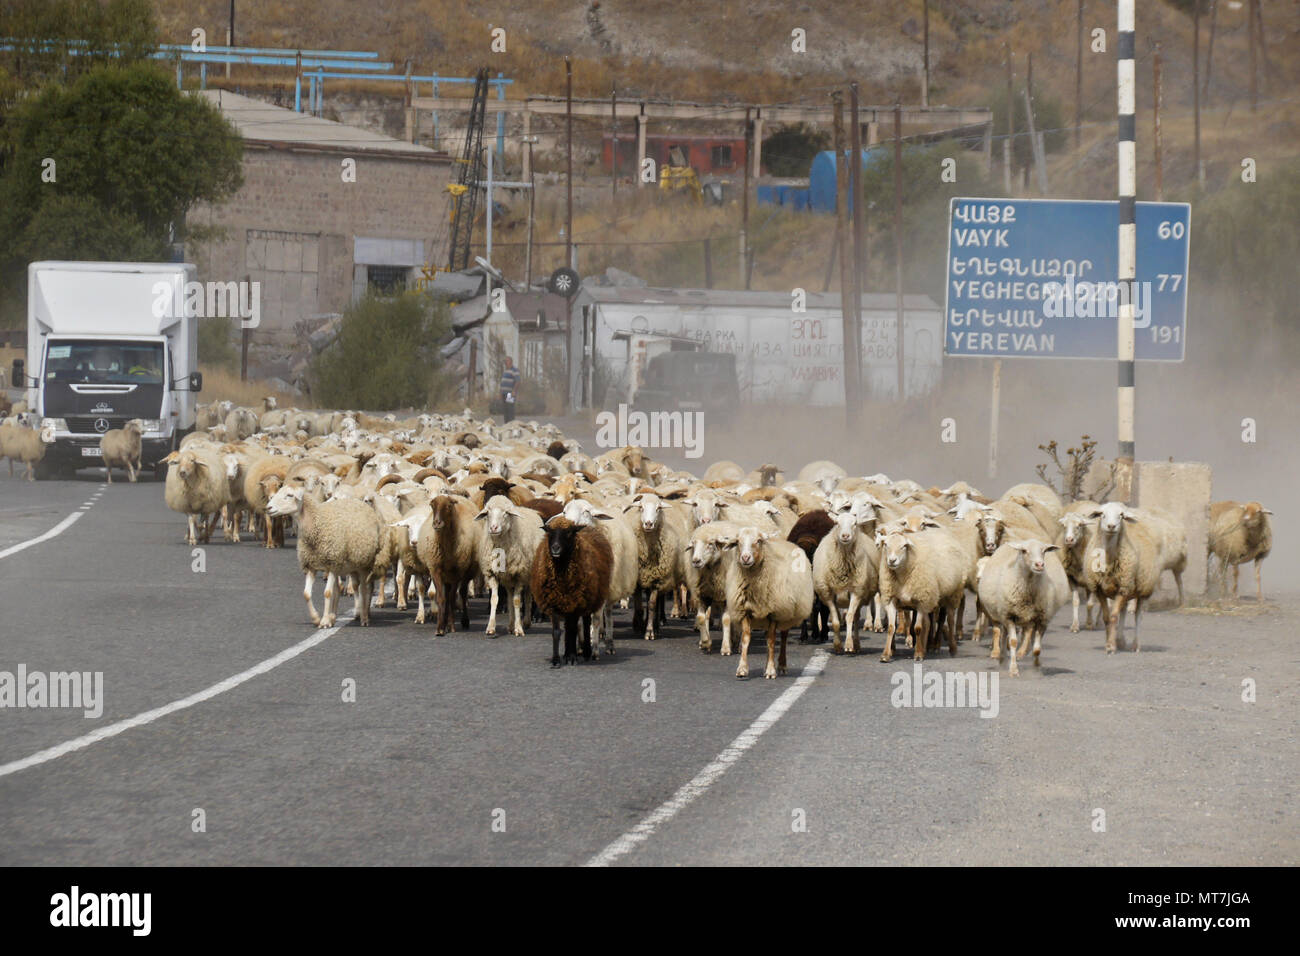 SISIAN, ARMENIA, SEPTEMBER 27, 2017. A flock of sheep blocks traffic as it walks past a bilingual distance sign on the road through town. - Stock Image